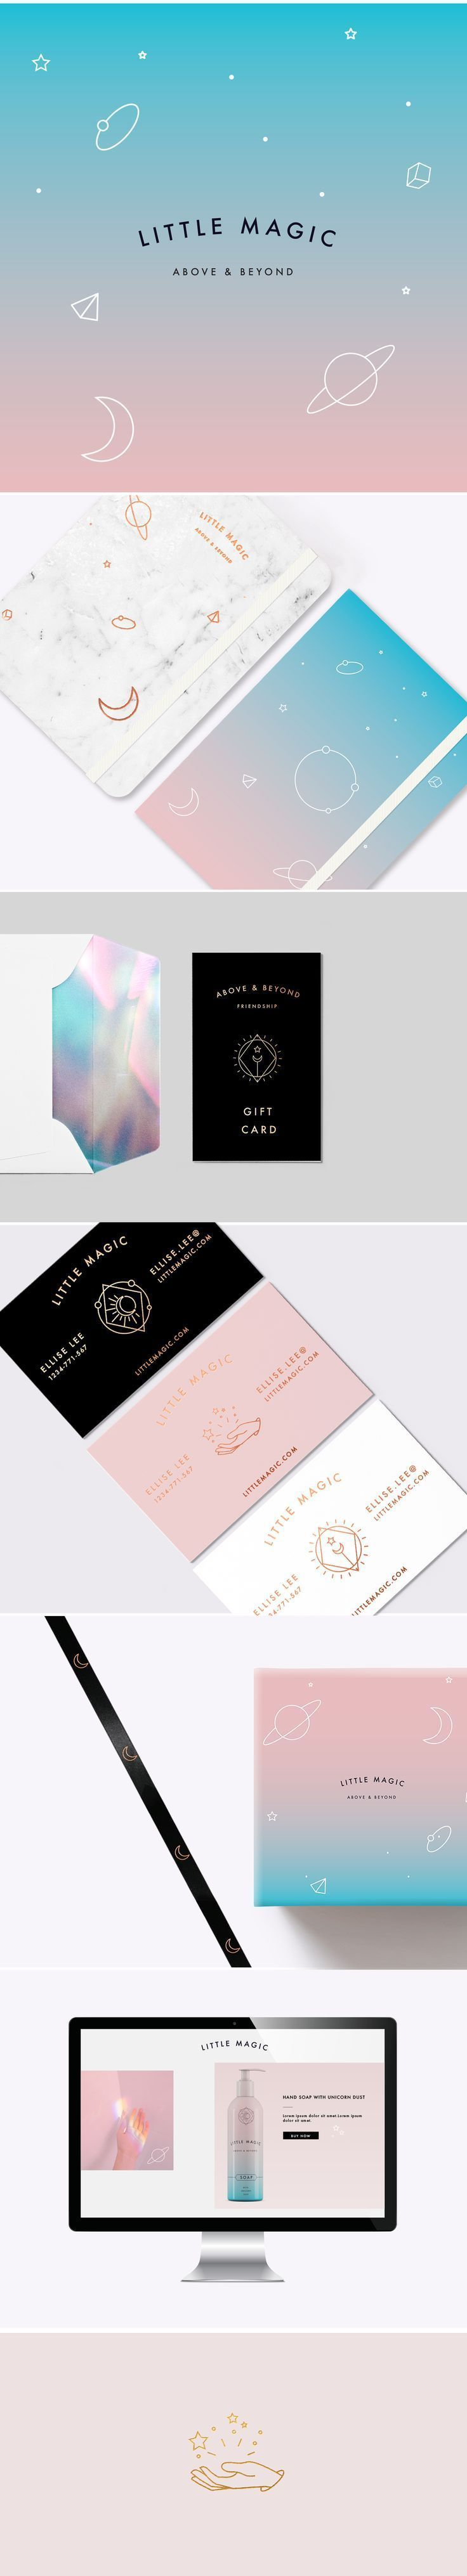 Exclusive brand concept and branding package. Available | loolaadesigns.com